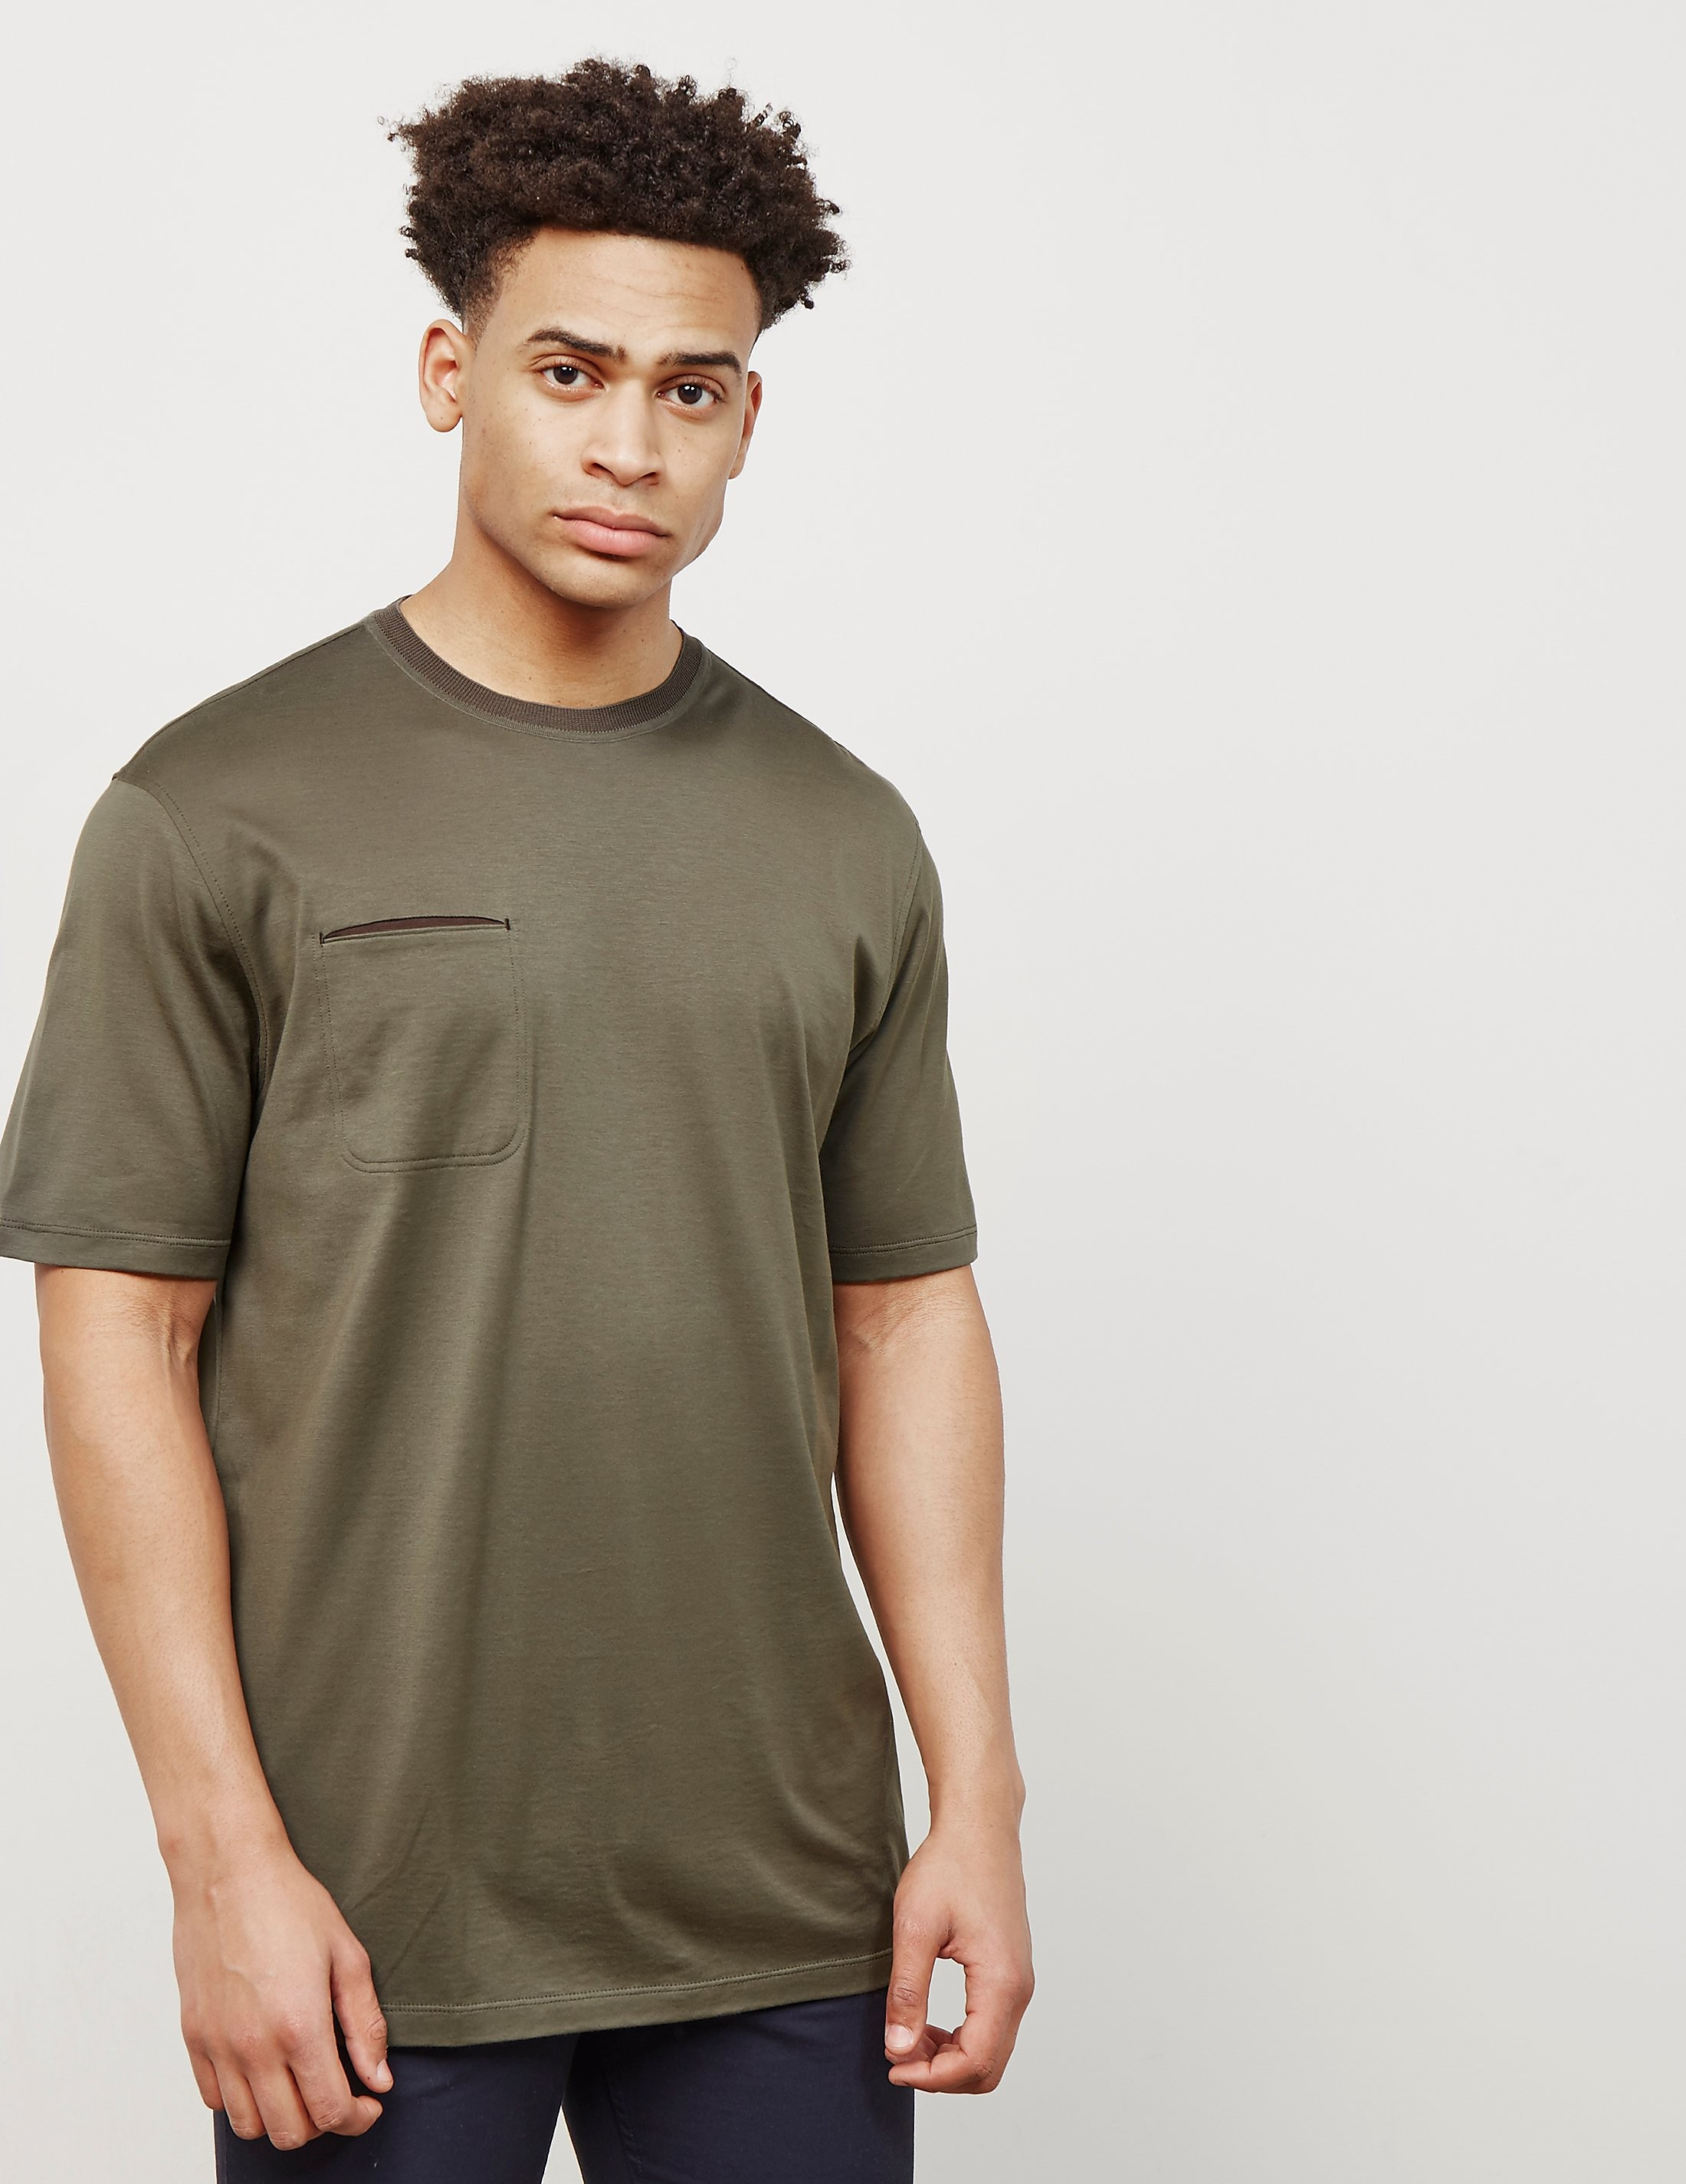 Z Zegna Pocket Short Sleeve T-Shirt - Online Exclusive